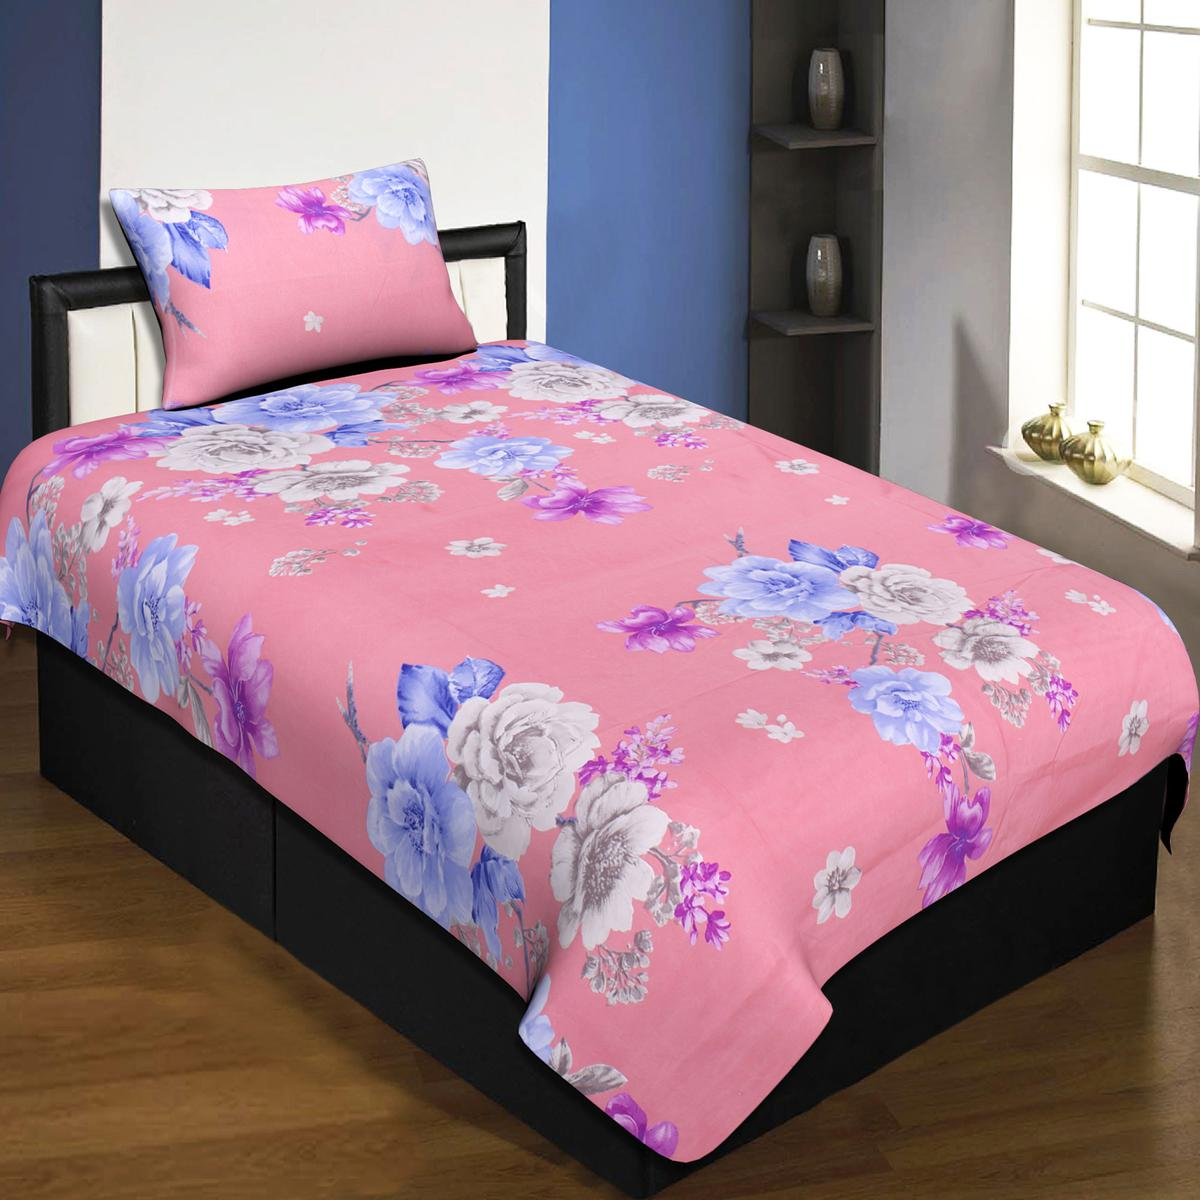 Jaipur Fabric Pink Colored Floral Single Bedsheet With 1 Pillow Cover